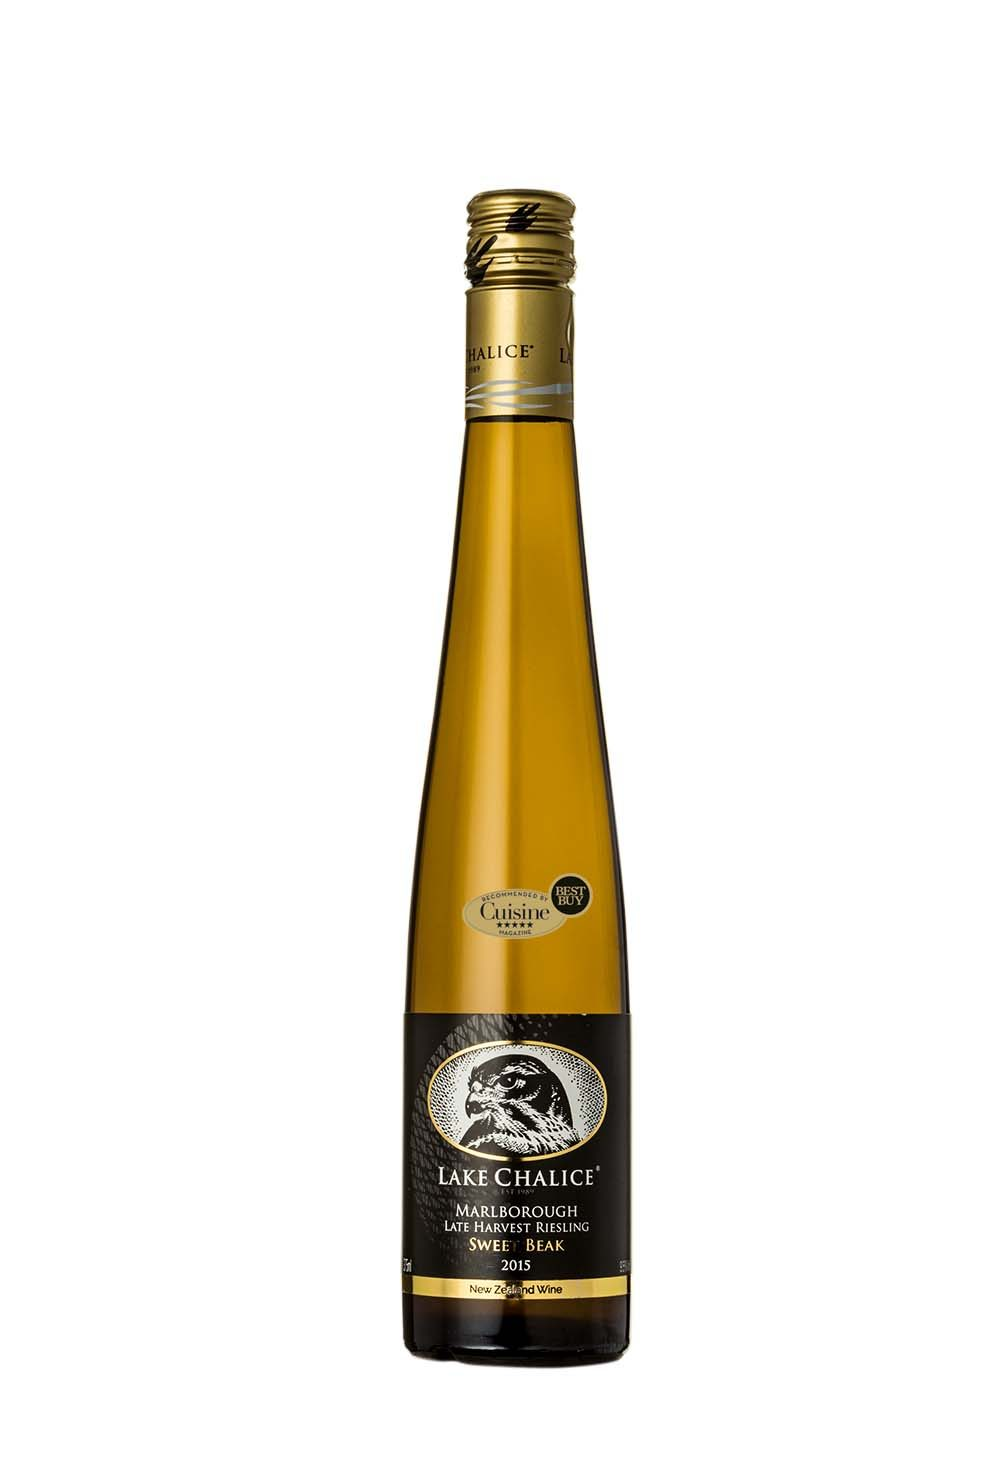 Lake Chalice Sweet Beak Late Harvest Riesling 2015